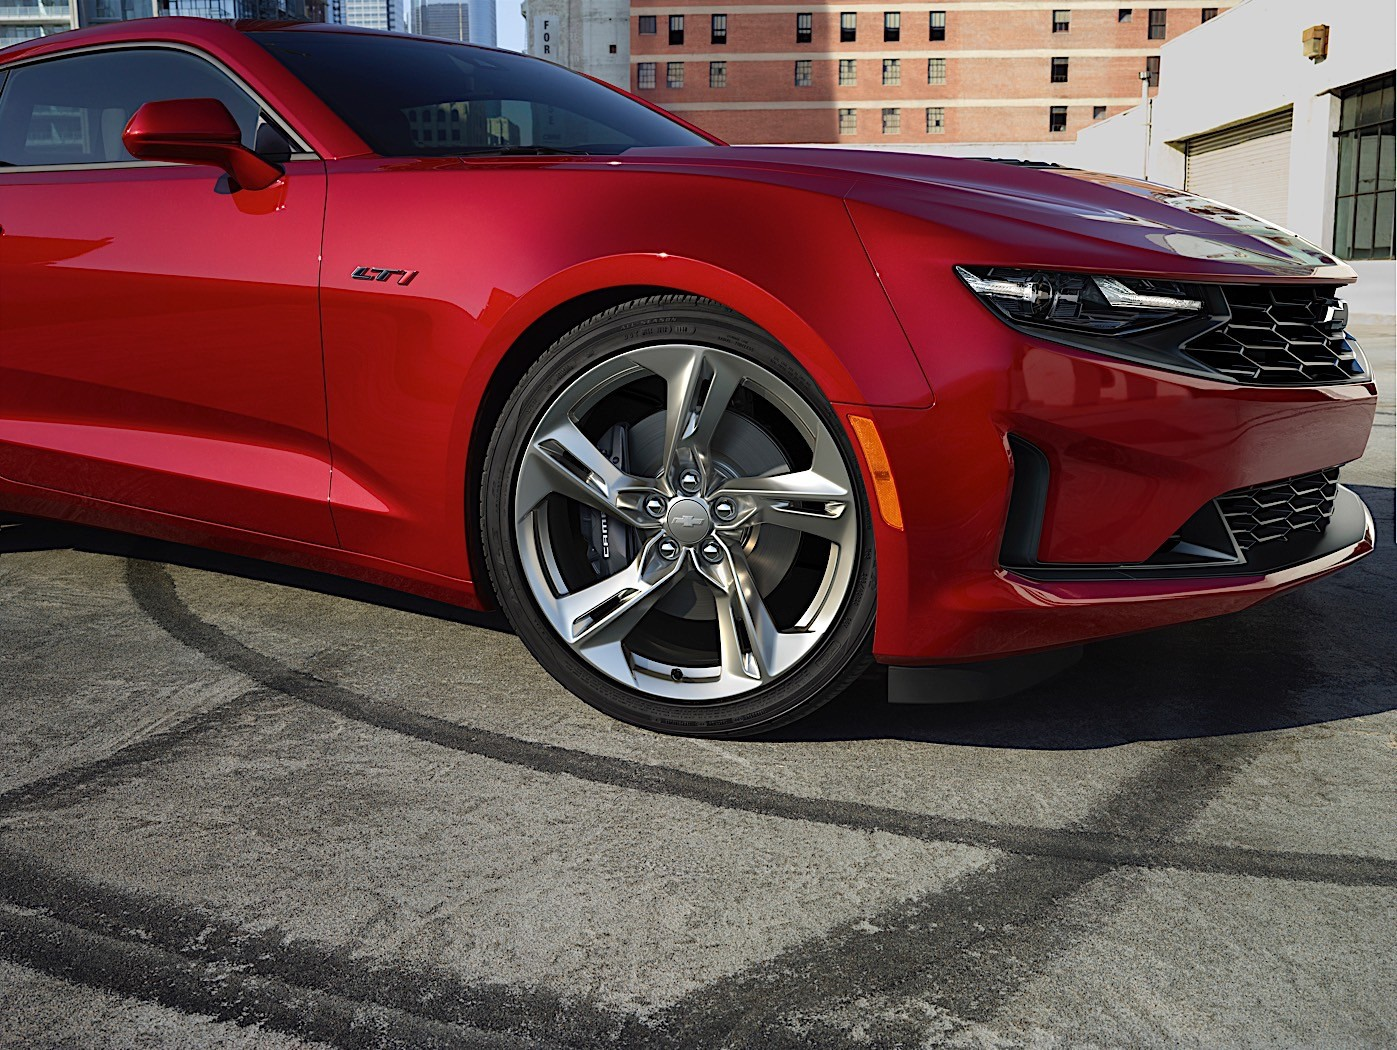 2020 Chevrolet Camaro Ss Gets Shock Look Lt1 Joins The